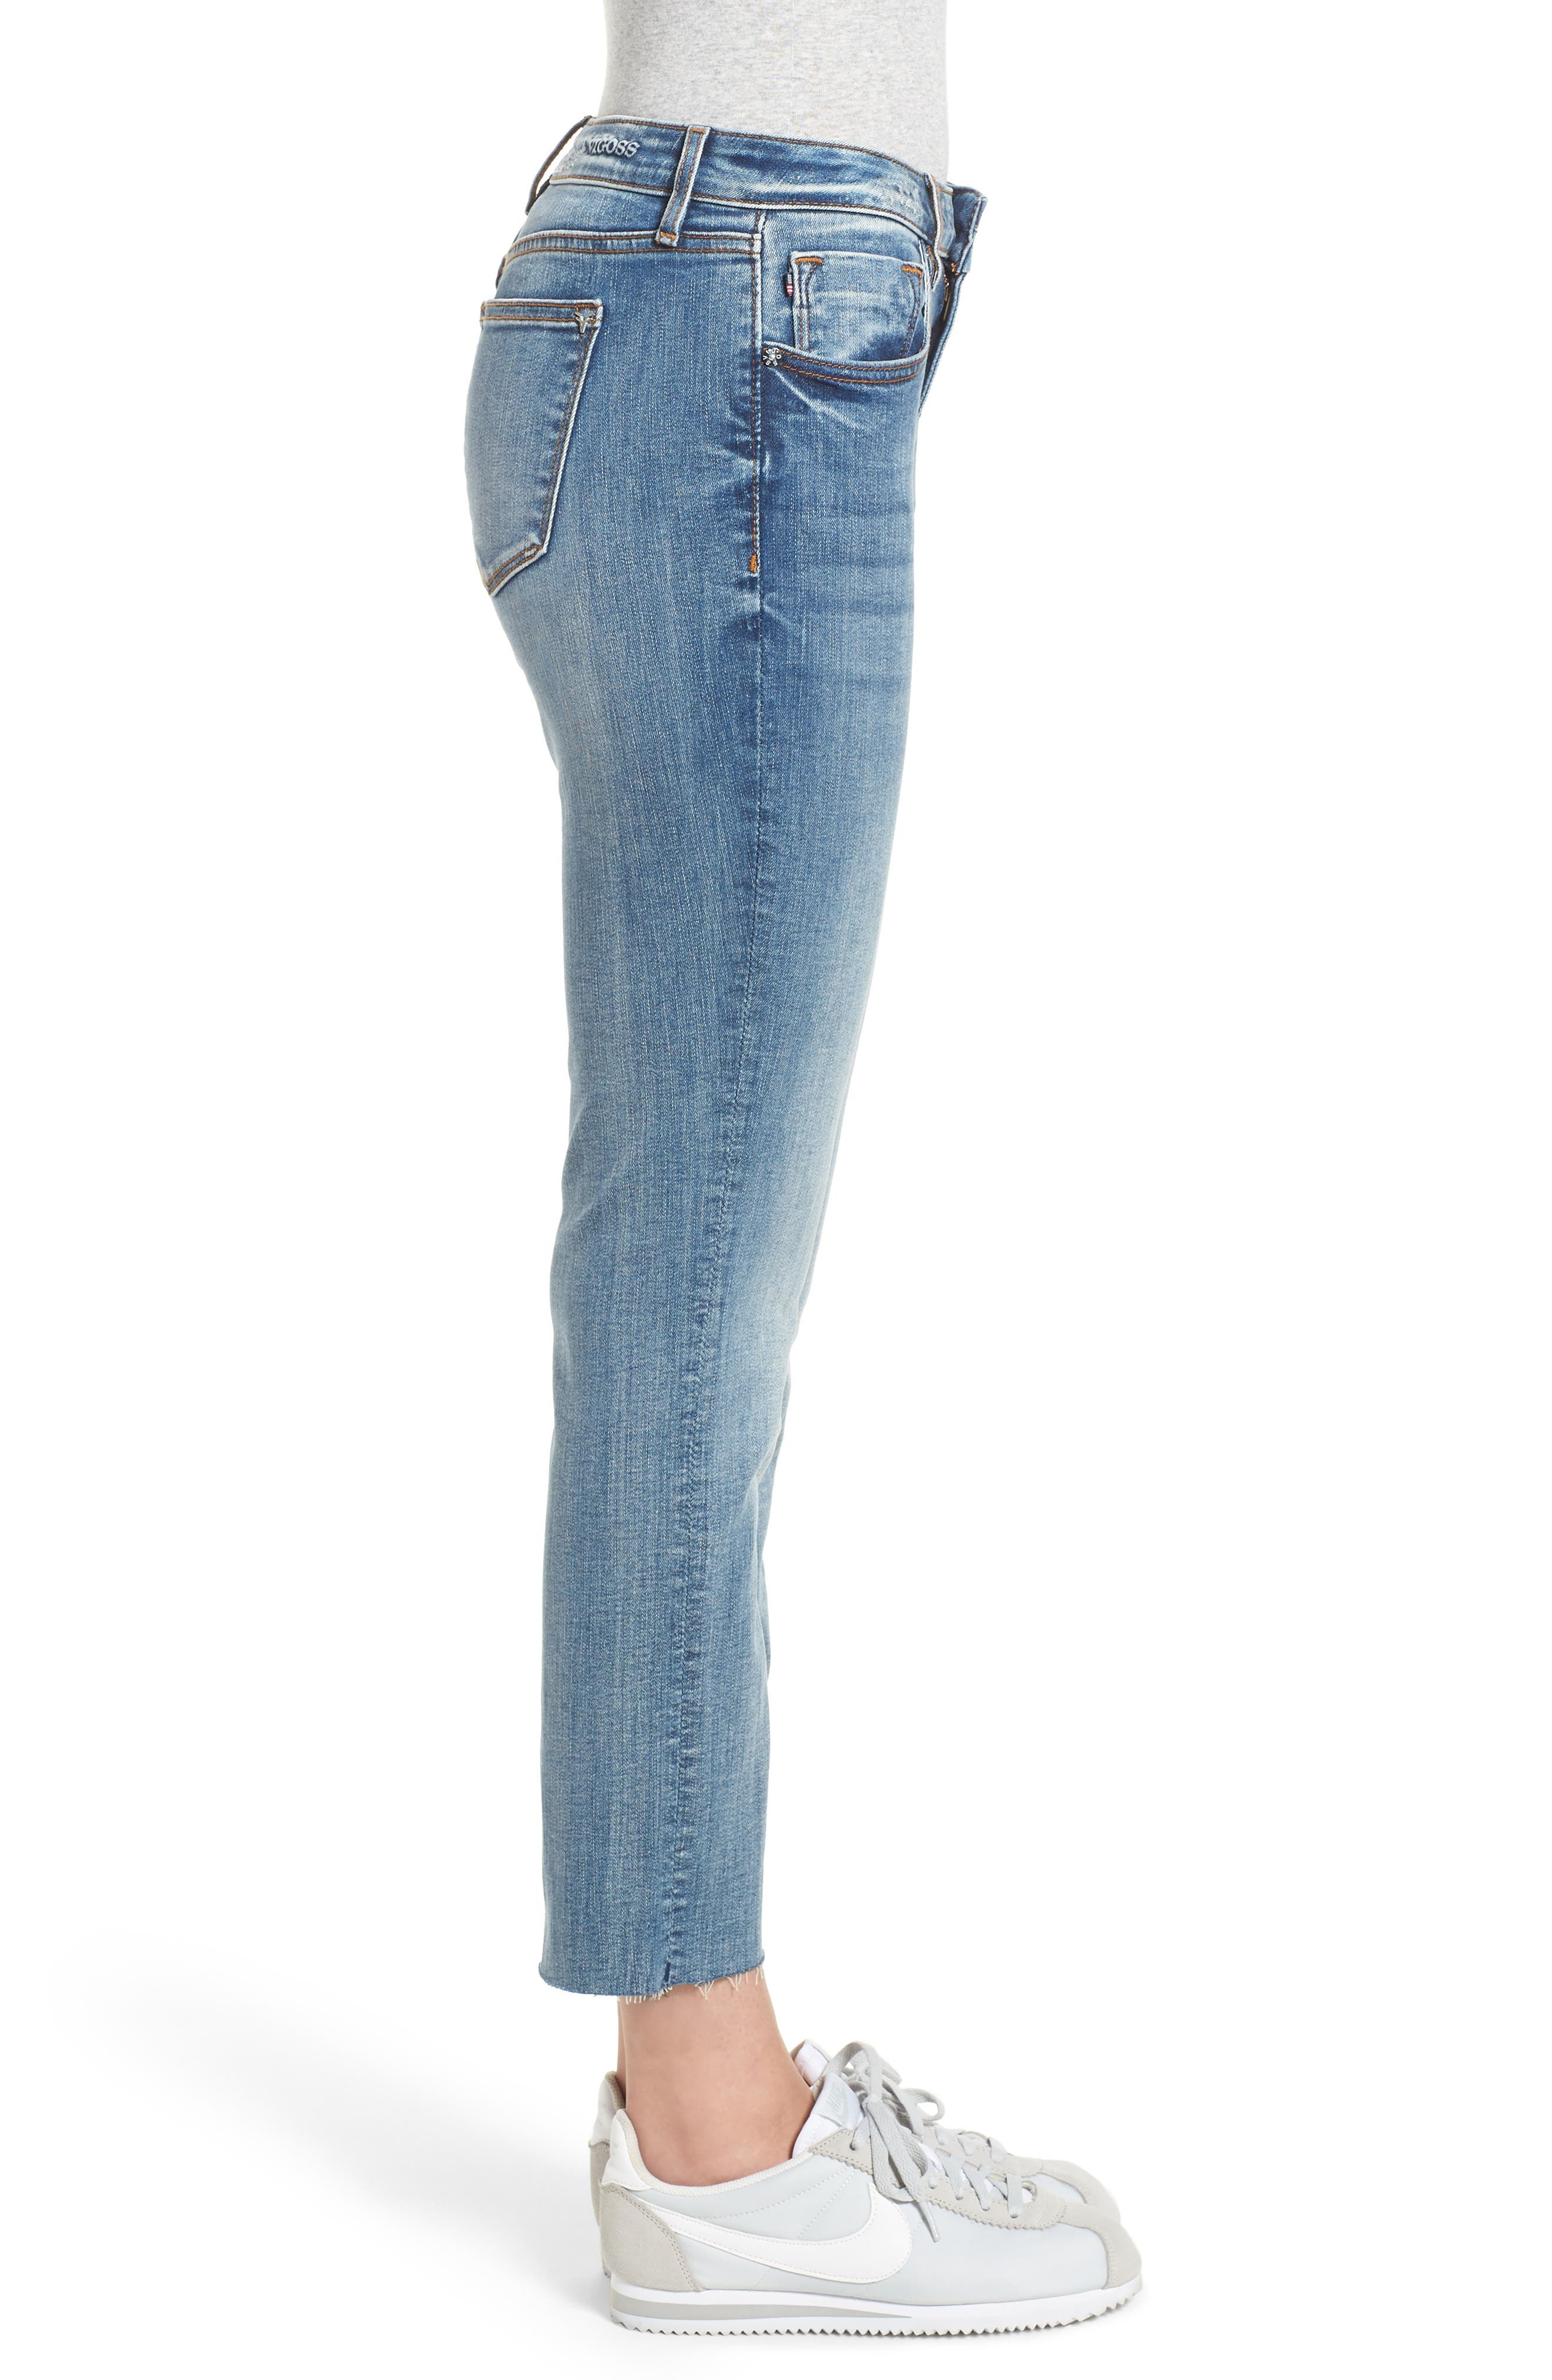 Jagger Crop Straight Leg Jeans,                             Alternate thumbnail 3, color,